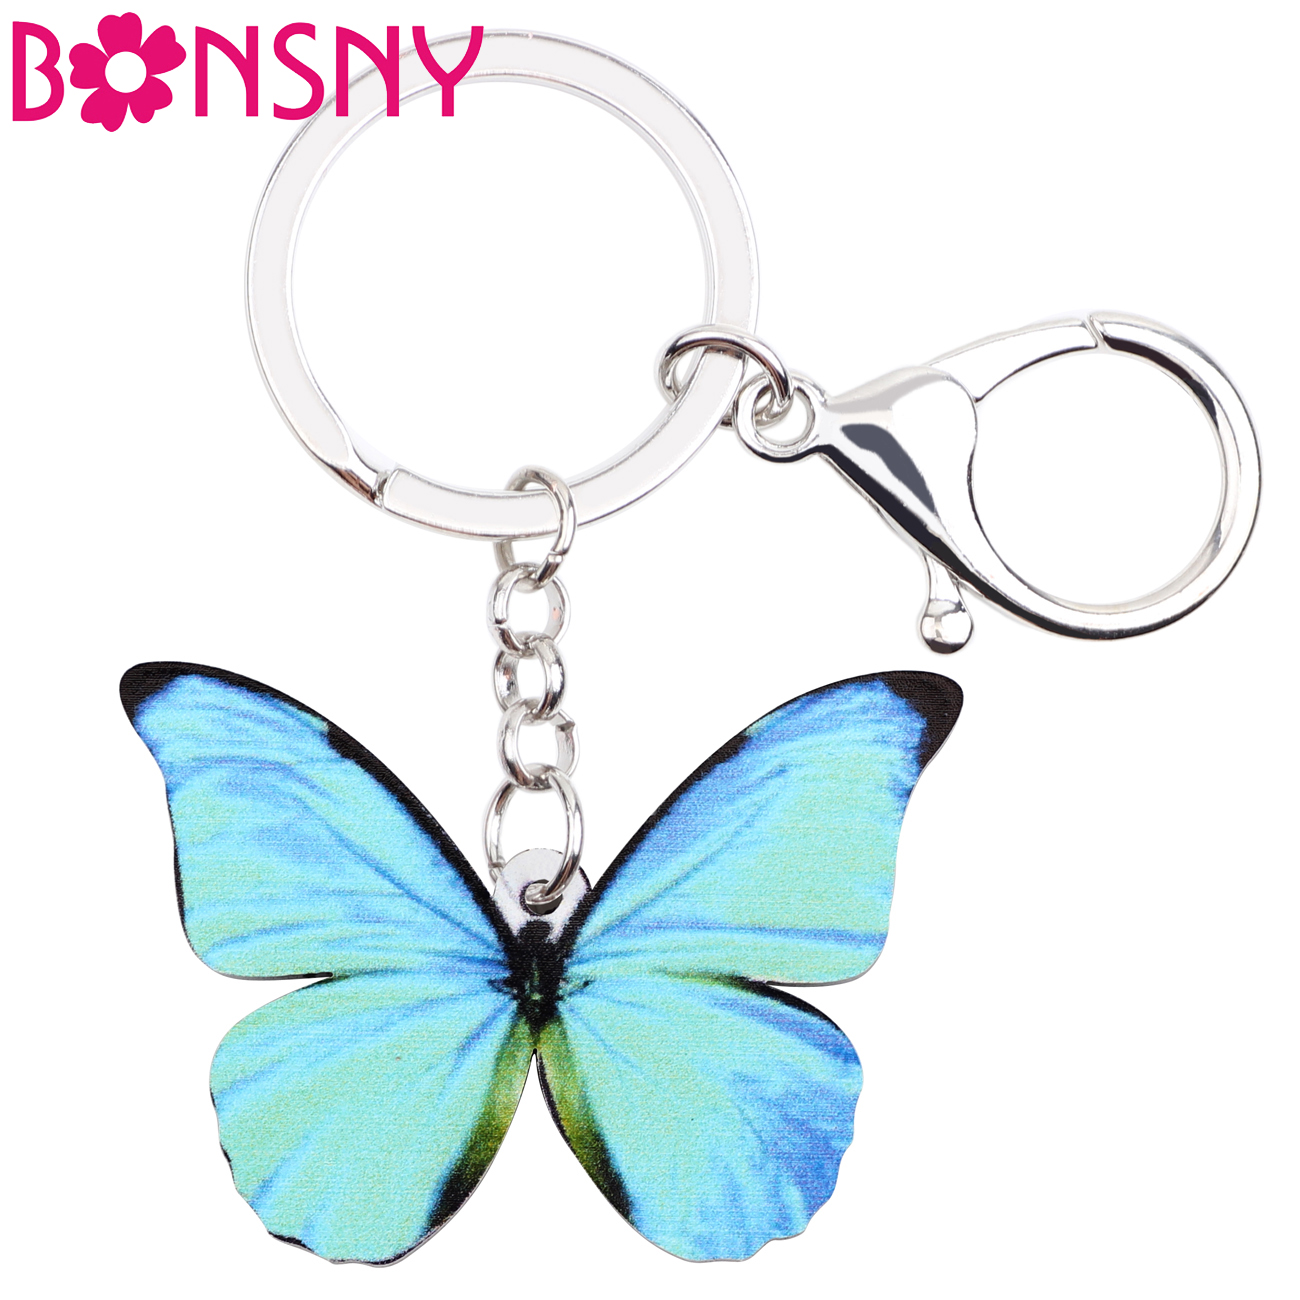 Bonsny Acrylic Pattern Morpho Menelaus Butterfly Key Chain Key Ring Handbag Bag Charm Keychain Fashion Animal Jewelry For Women